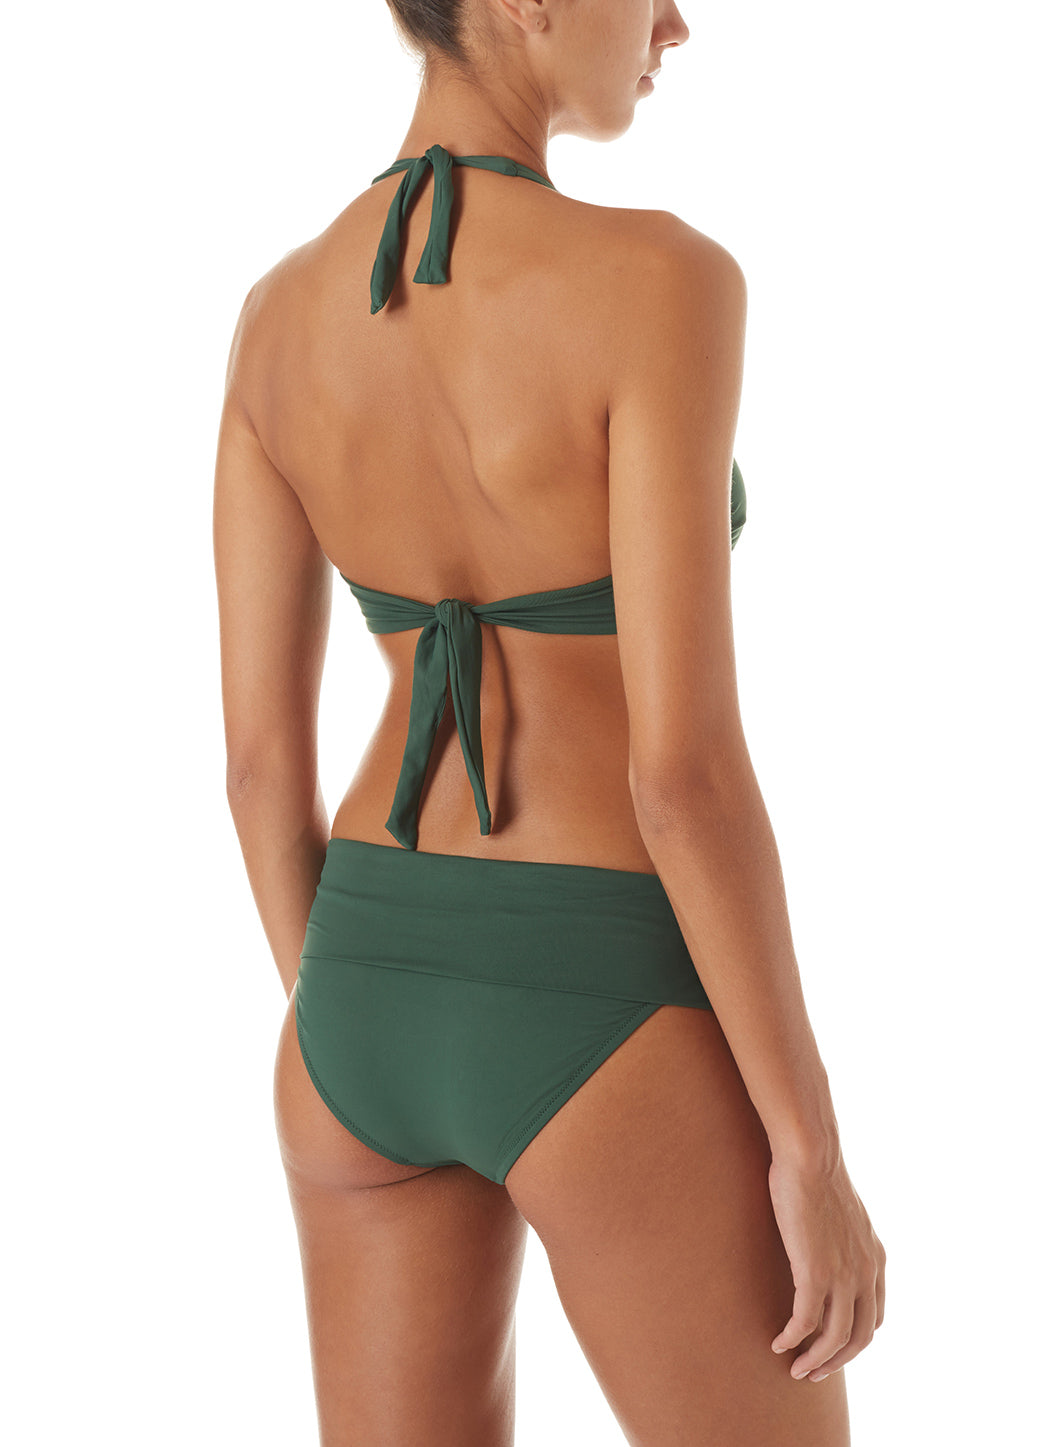 Exclusive Brussels Forest Halterneck Ring Supportive Bikini